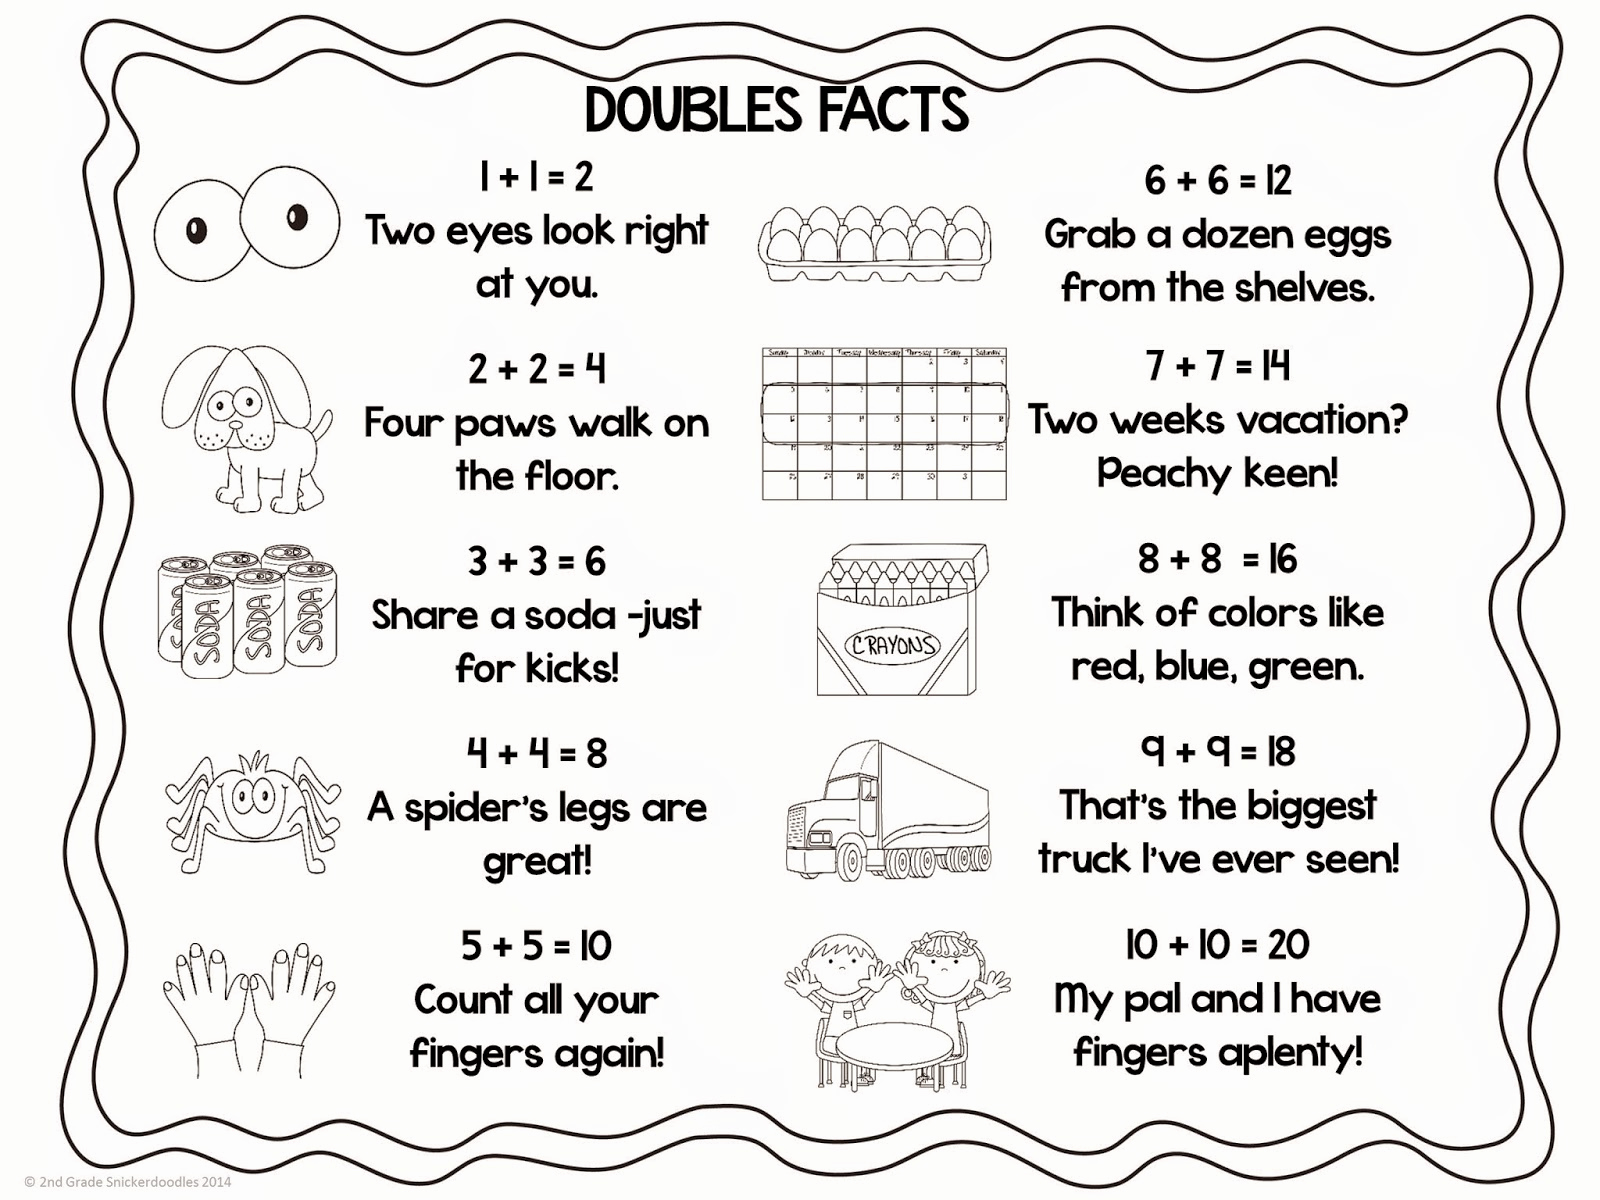 Double Facts Worksheets Fresh 2nd Grade Snickerdoodles Doubles Facts Freebie